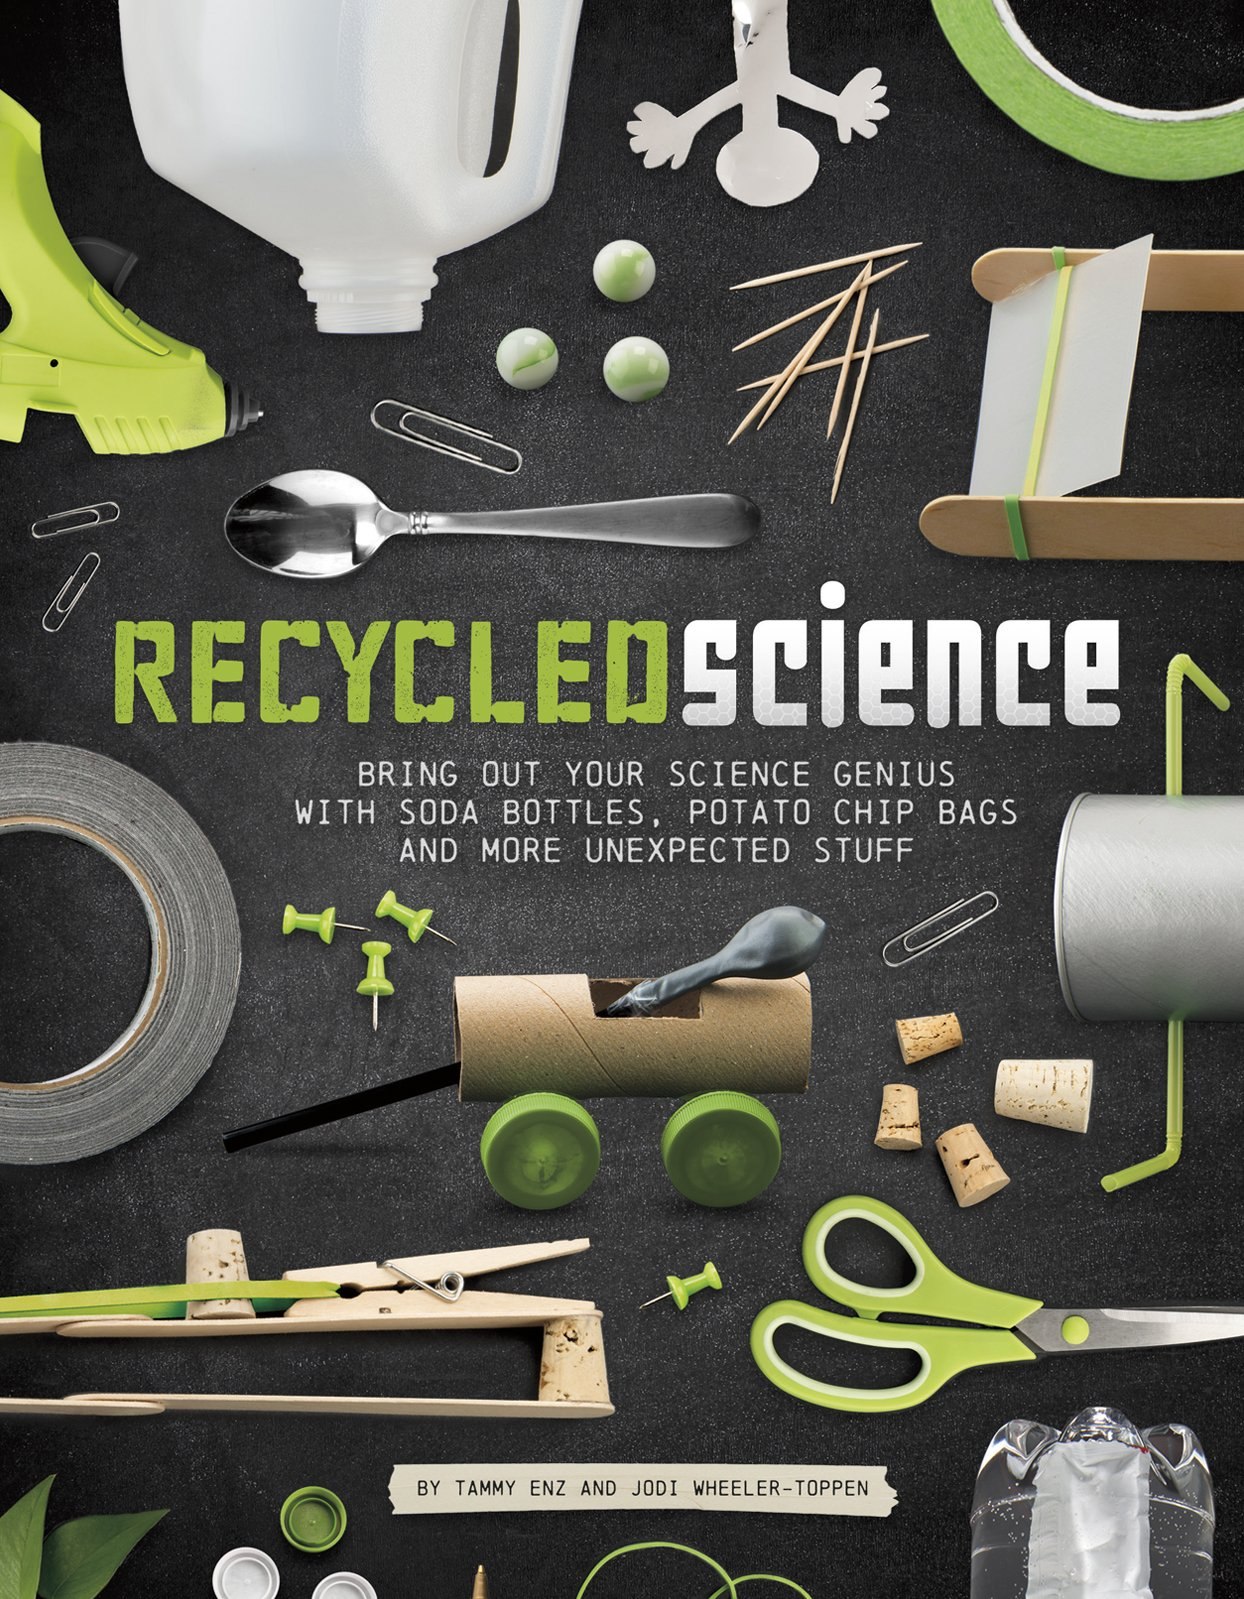 Recycled Science: Bring Out Your Science Genius with Soda Bottles, Potato Chip Bags, and More Unexpected Stuff - I love this book!  It's great for parents and for teachers.  It gets kids excited about building and creating things like paddle boats and ice cream makers from recyclable materials you probably have at your house.  #STEM #kids #students #teachers